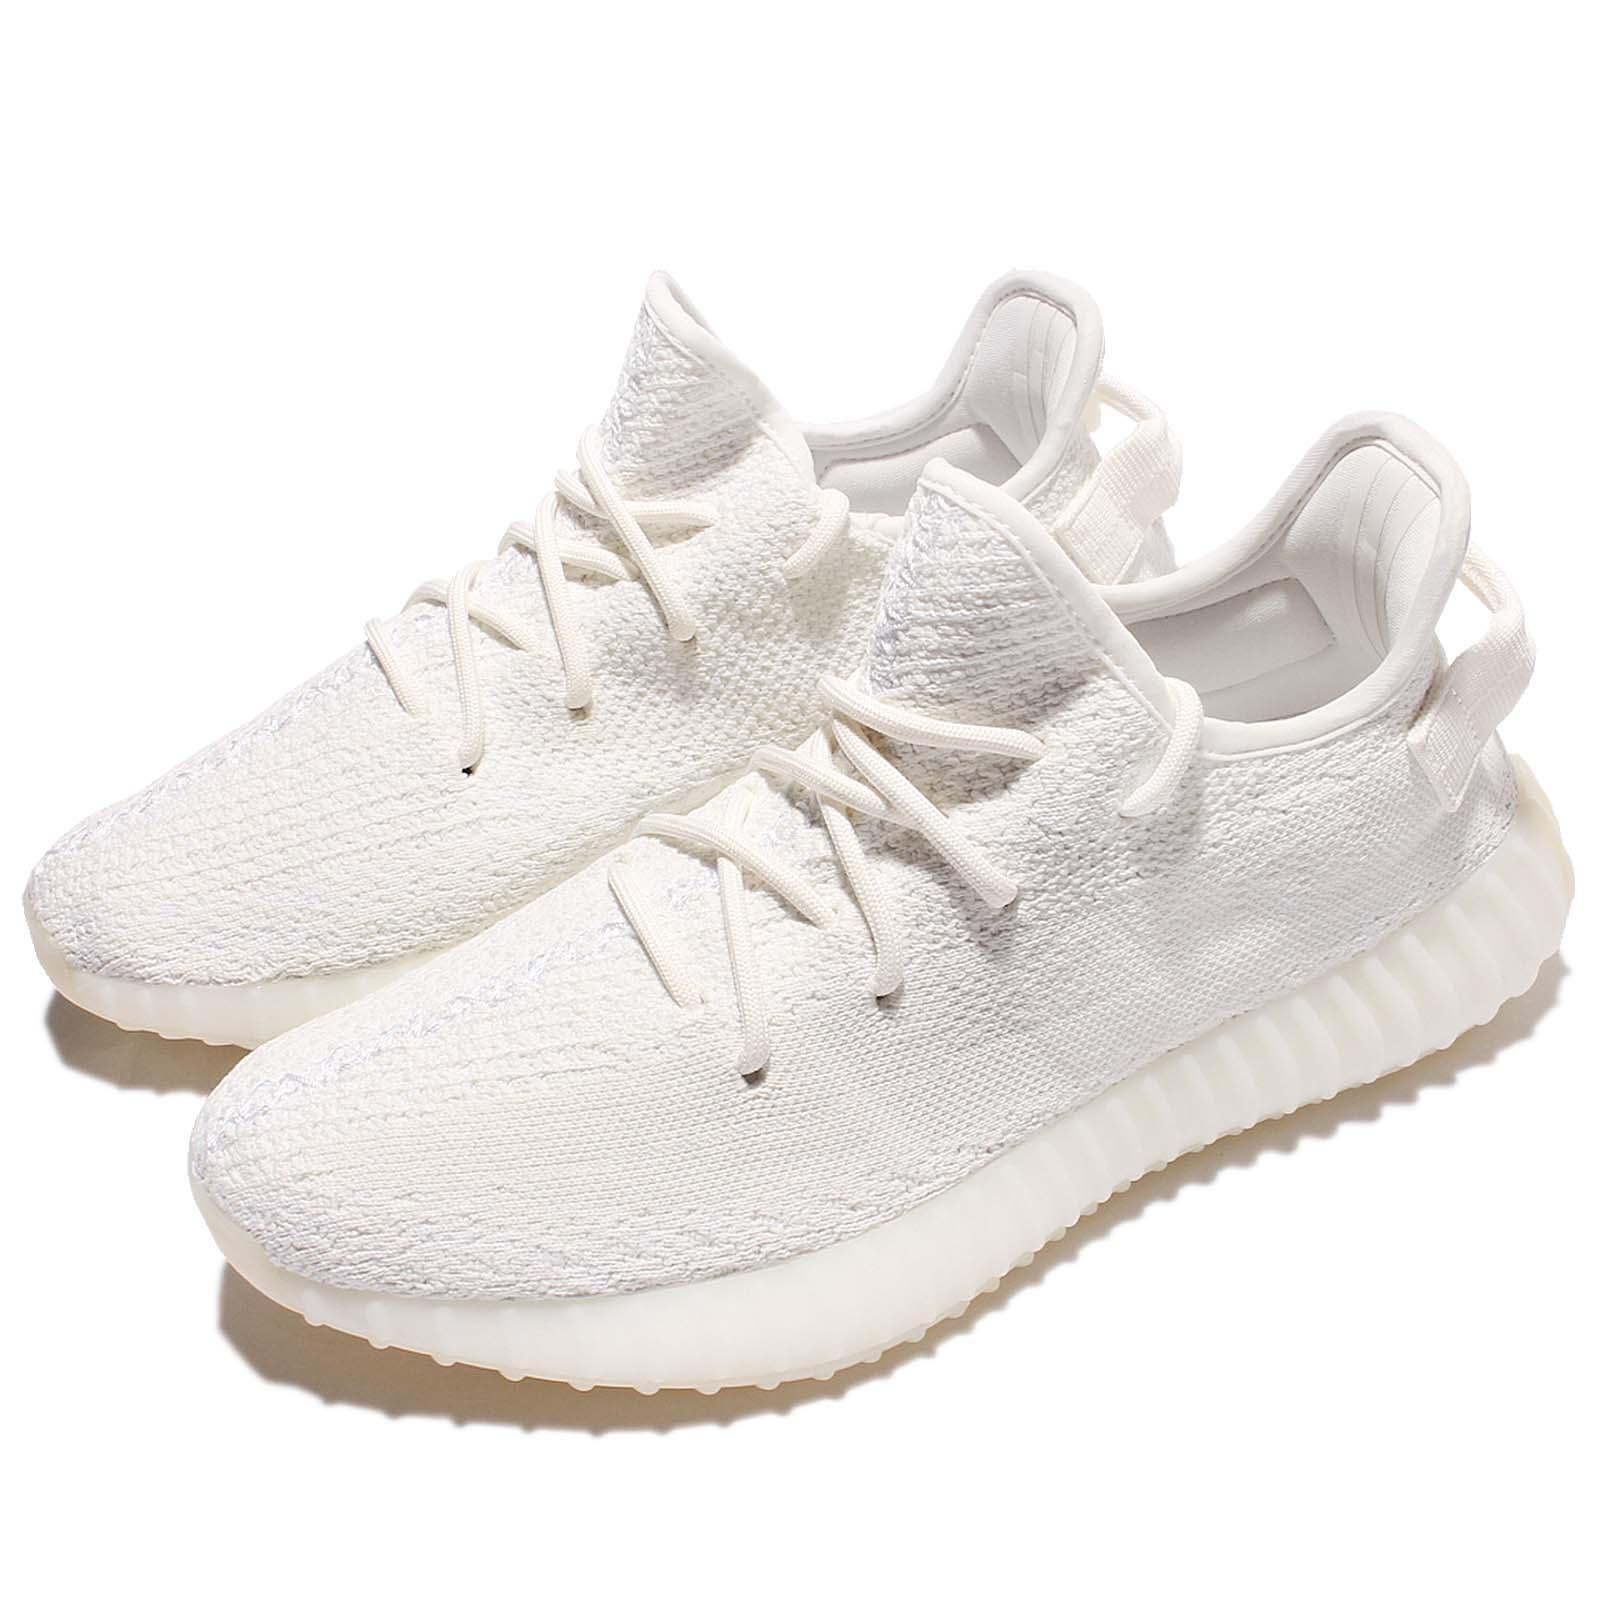 6ba7333bff868 Details about adidas Yeezy Boost 350 V2 Cream Triple White Kanye West  Fashion Shoes CP9366